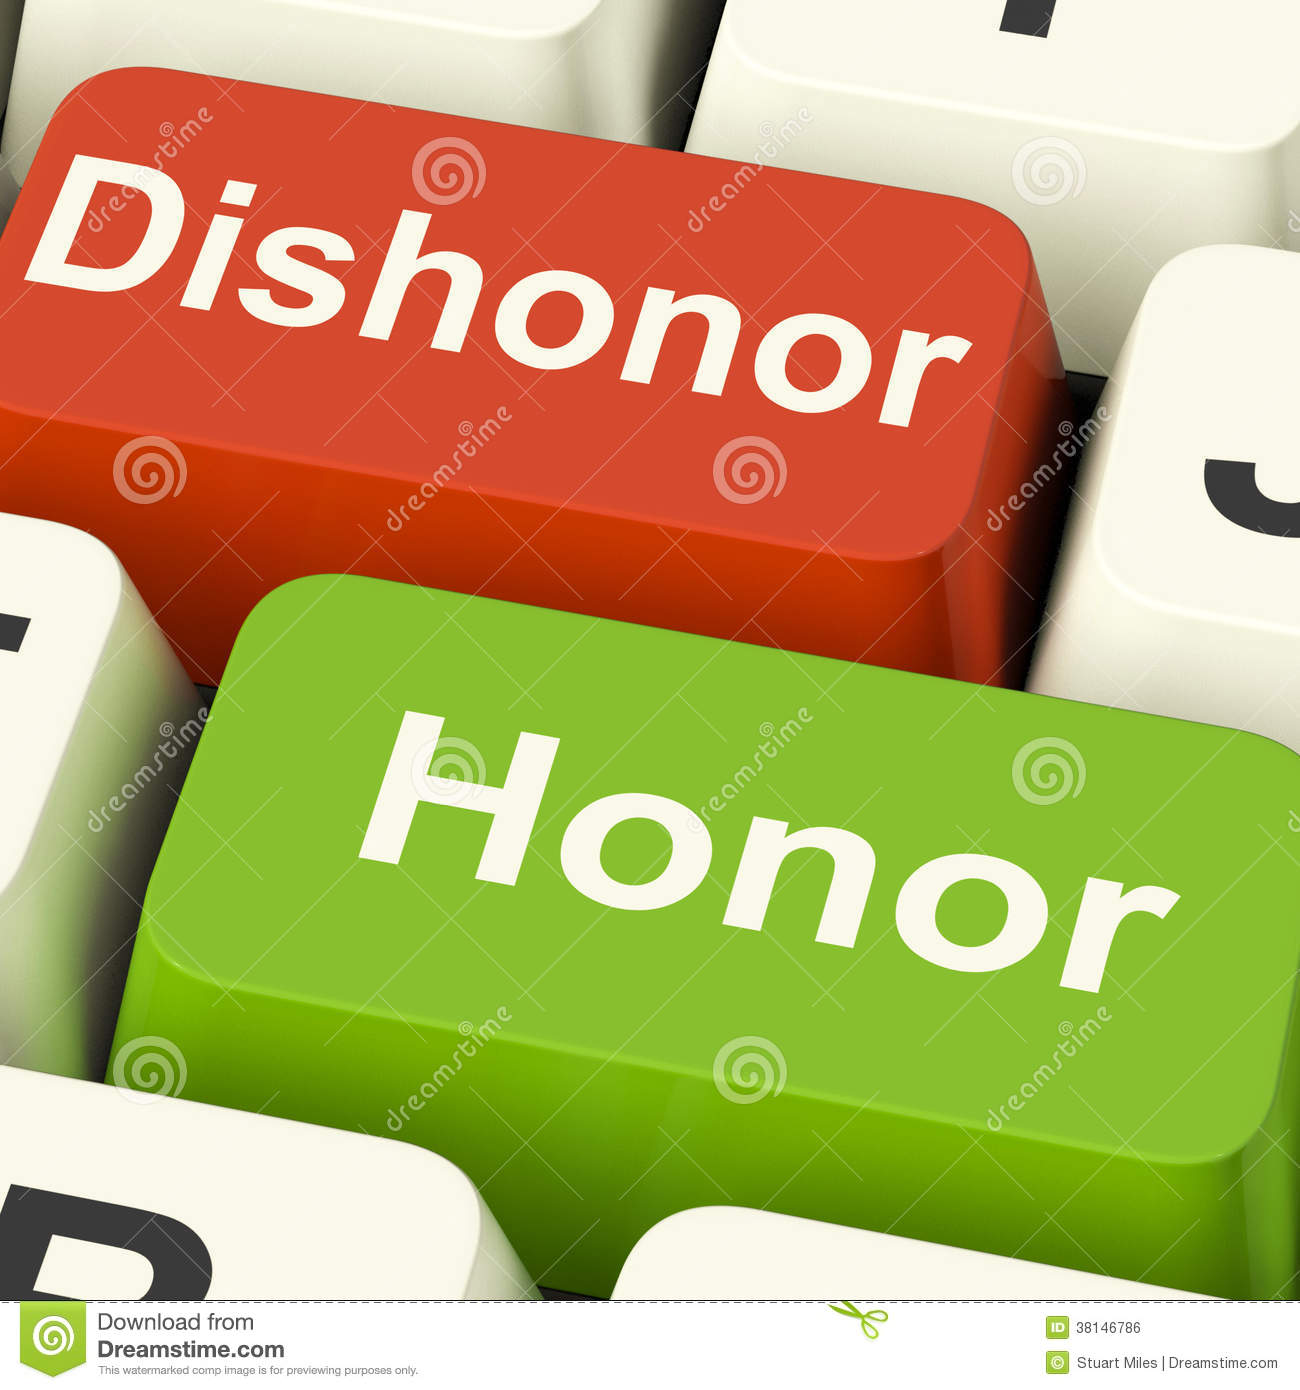 dishonor honor keys shows integrity and morals stock illustration